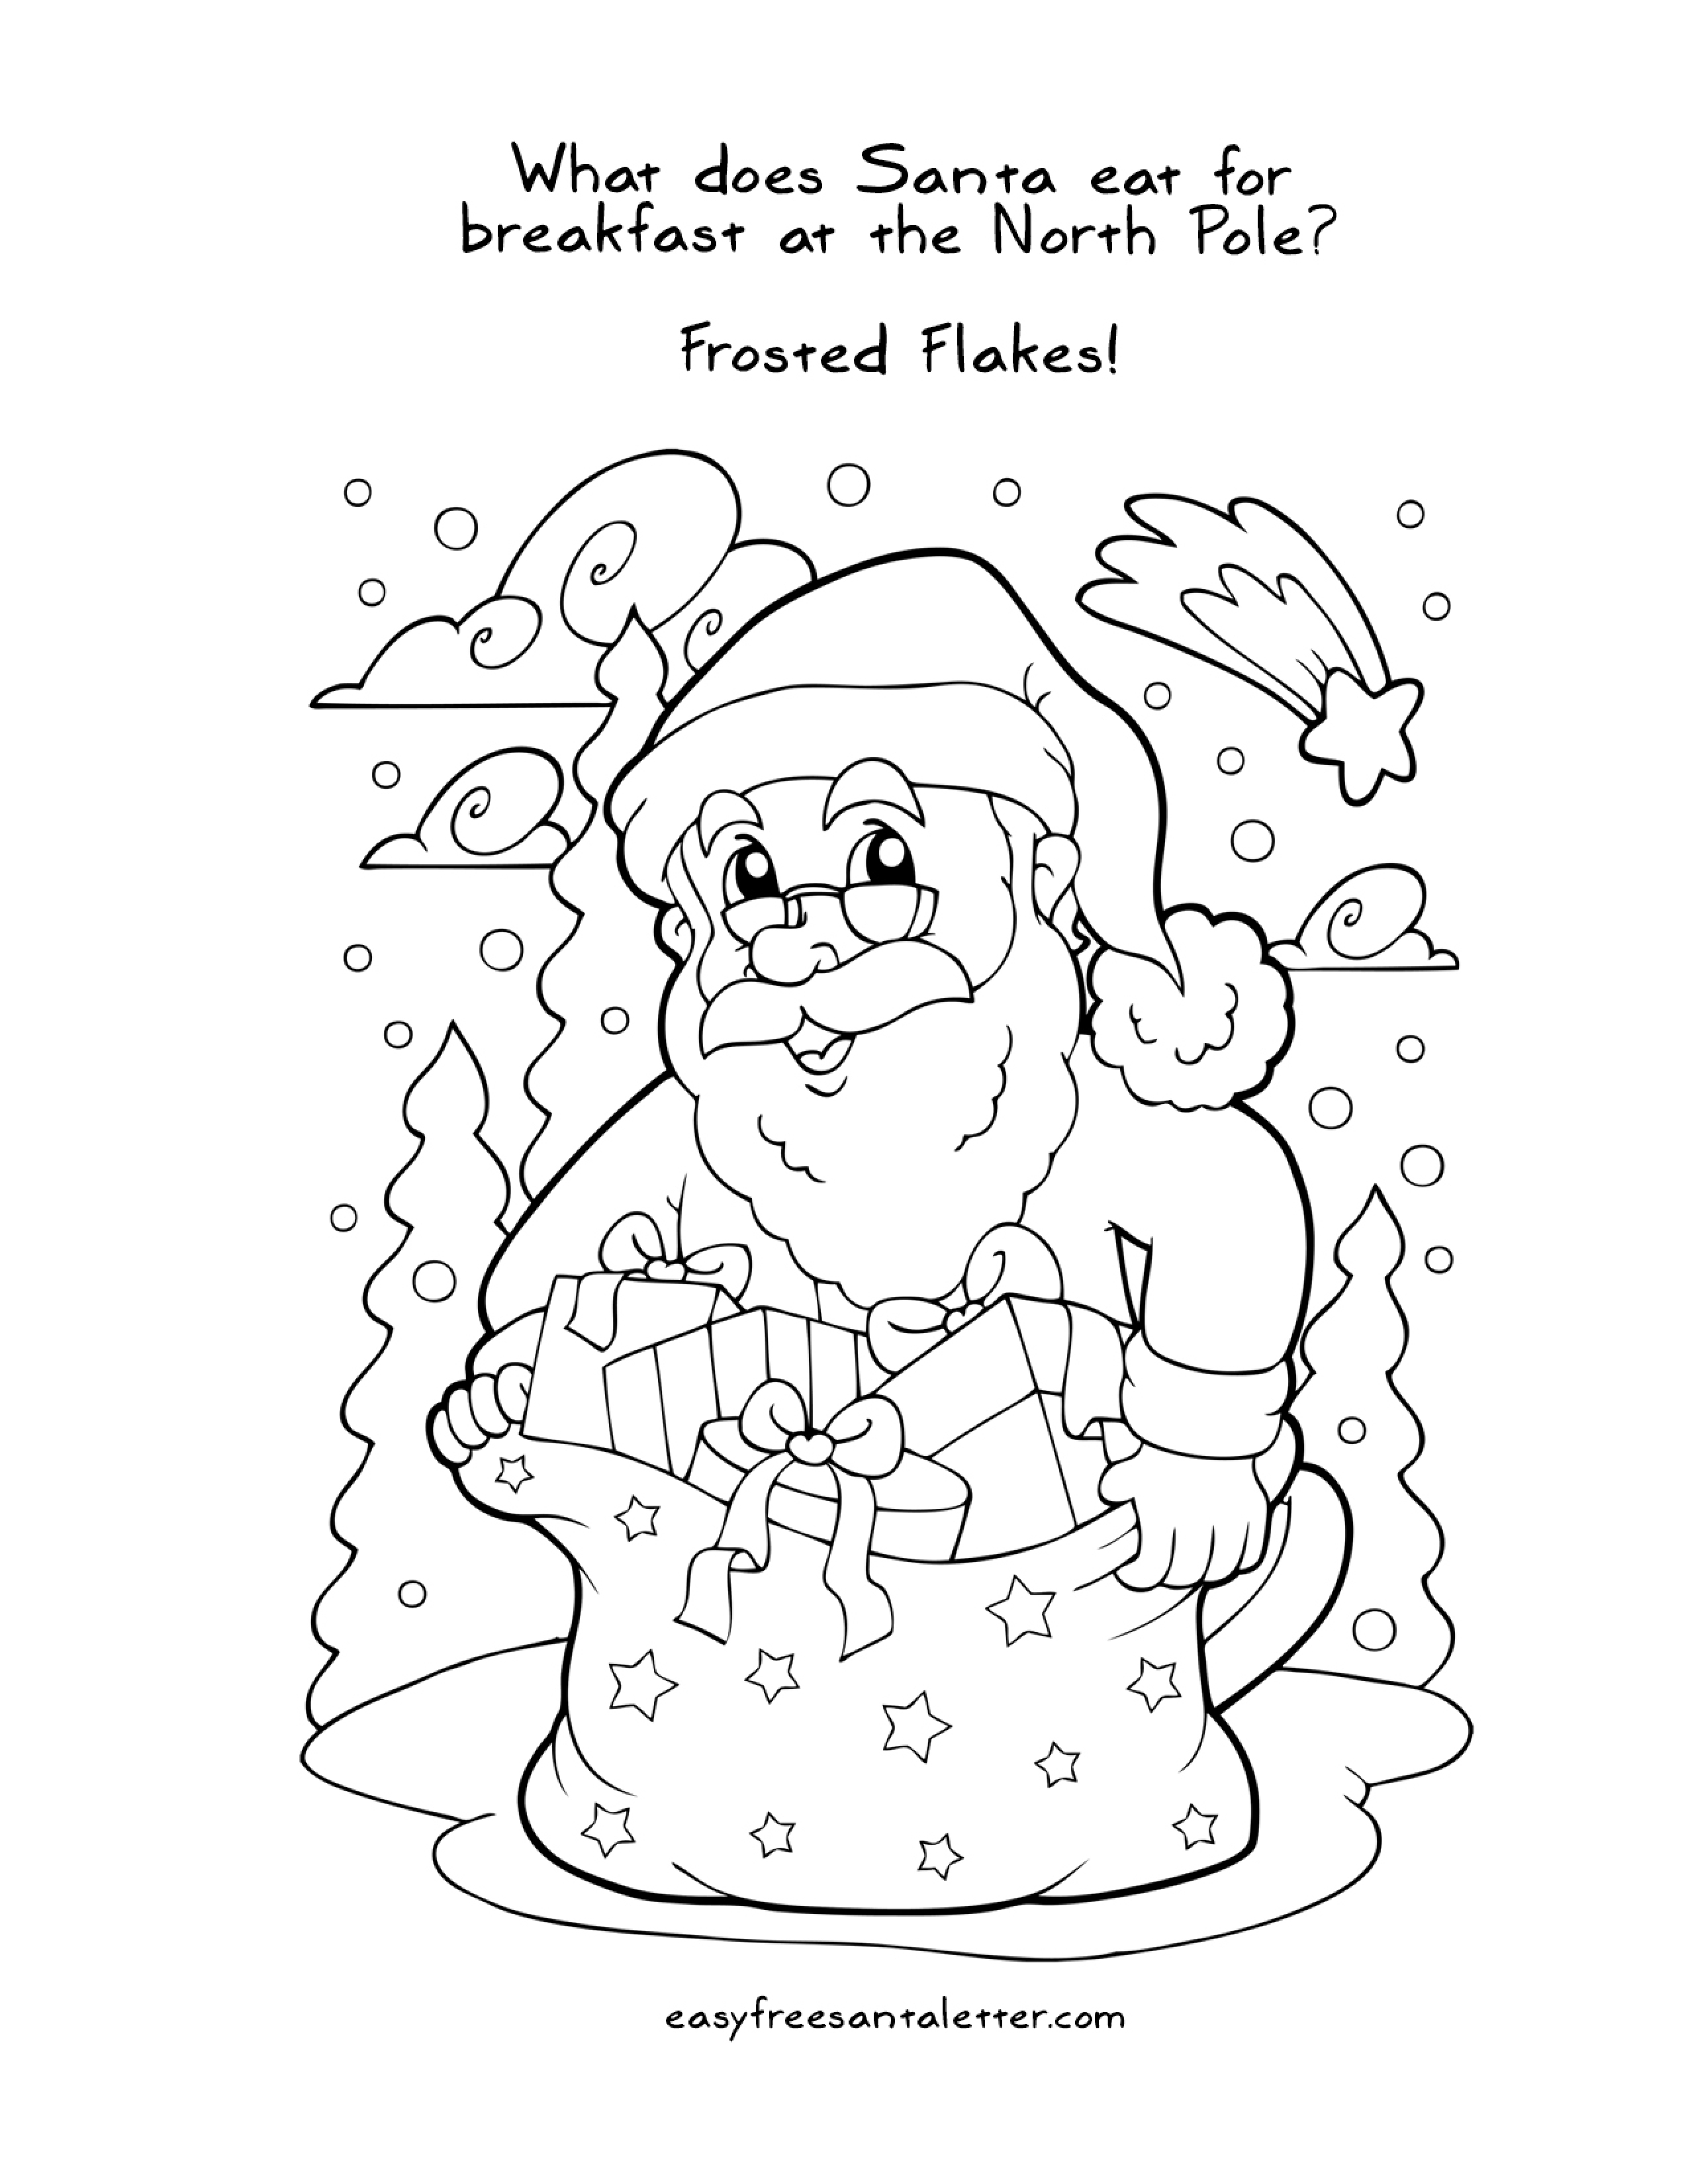 Large Santa Face Coloring Page With Free Printable Christmas Pages Jokes And